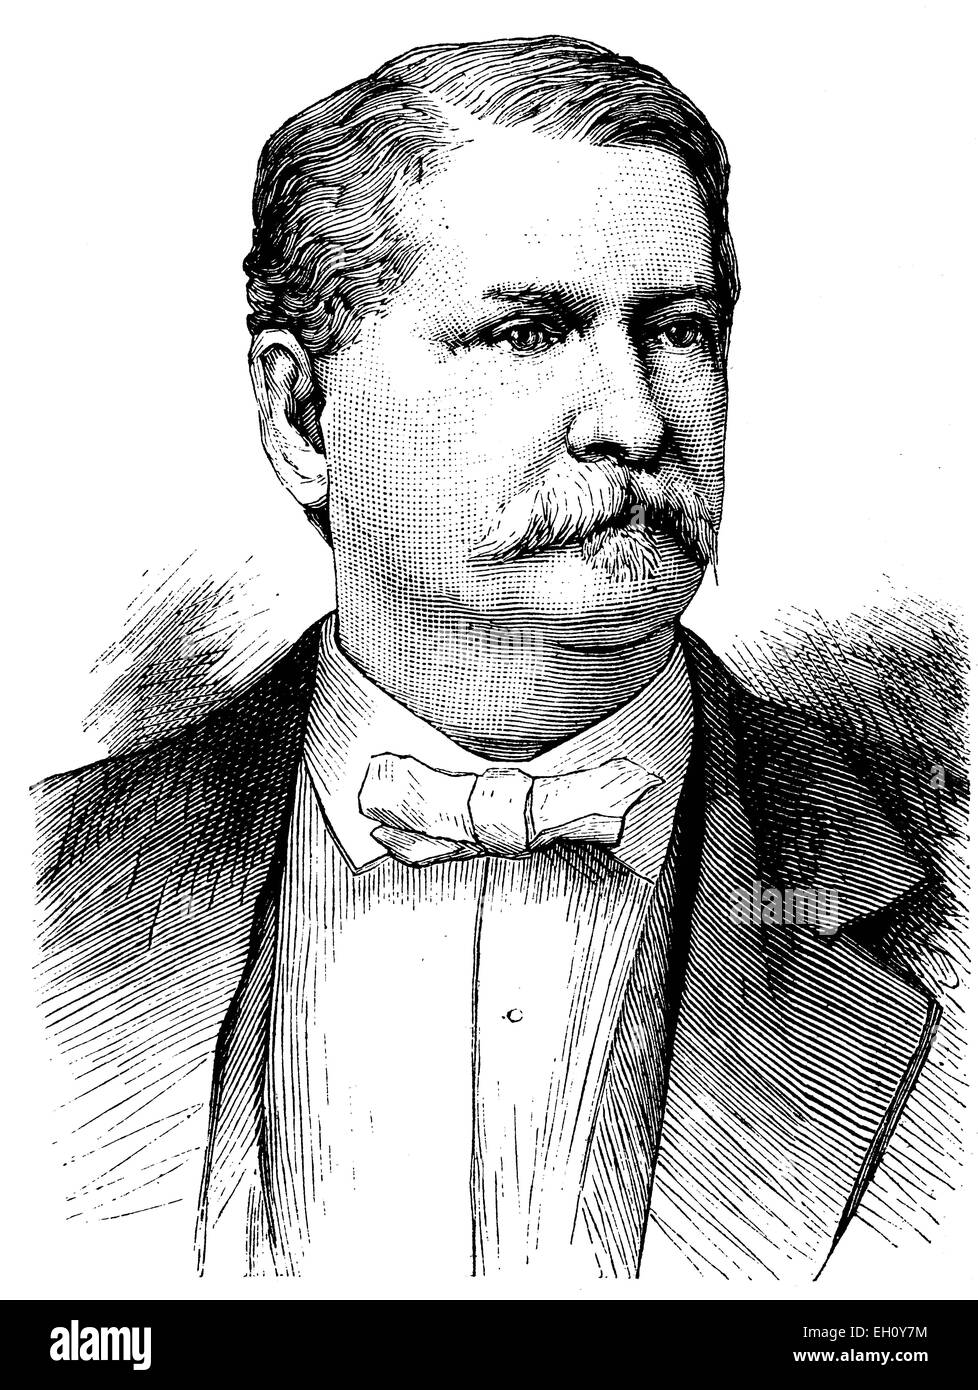 Winfield Scott Hancock, 1824-1886, Major-General of the U.S. Army, Democratic candidate for the US Presidential - Stock Image